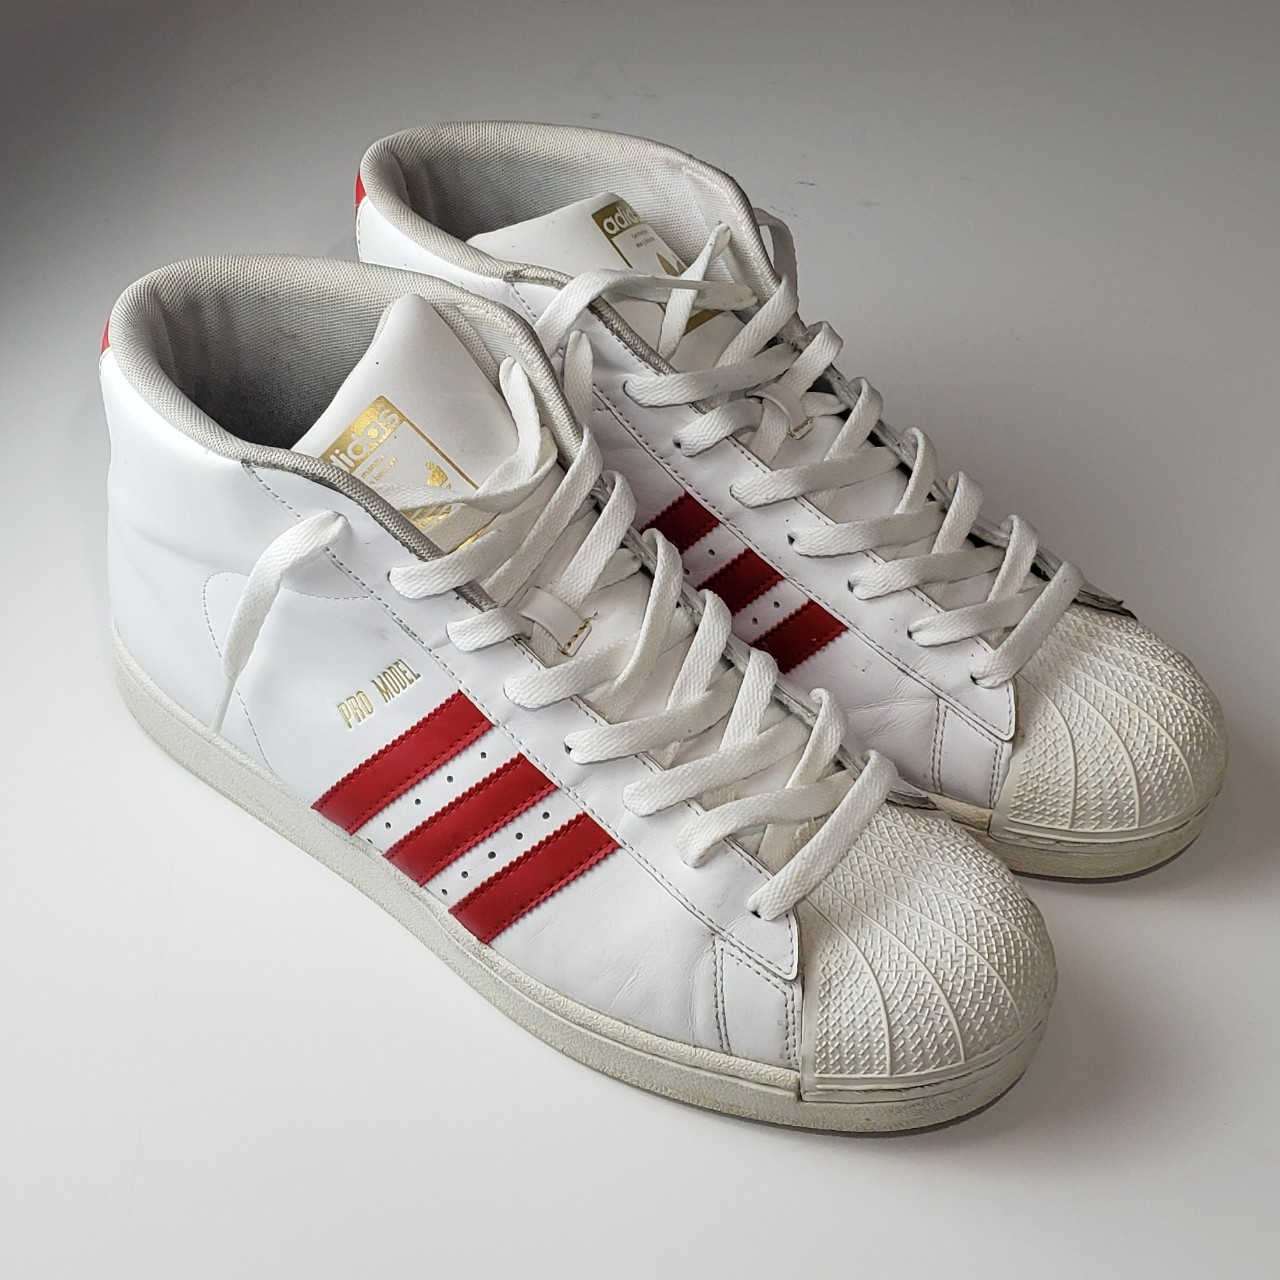 High Top Shell toe Adidas. These are